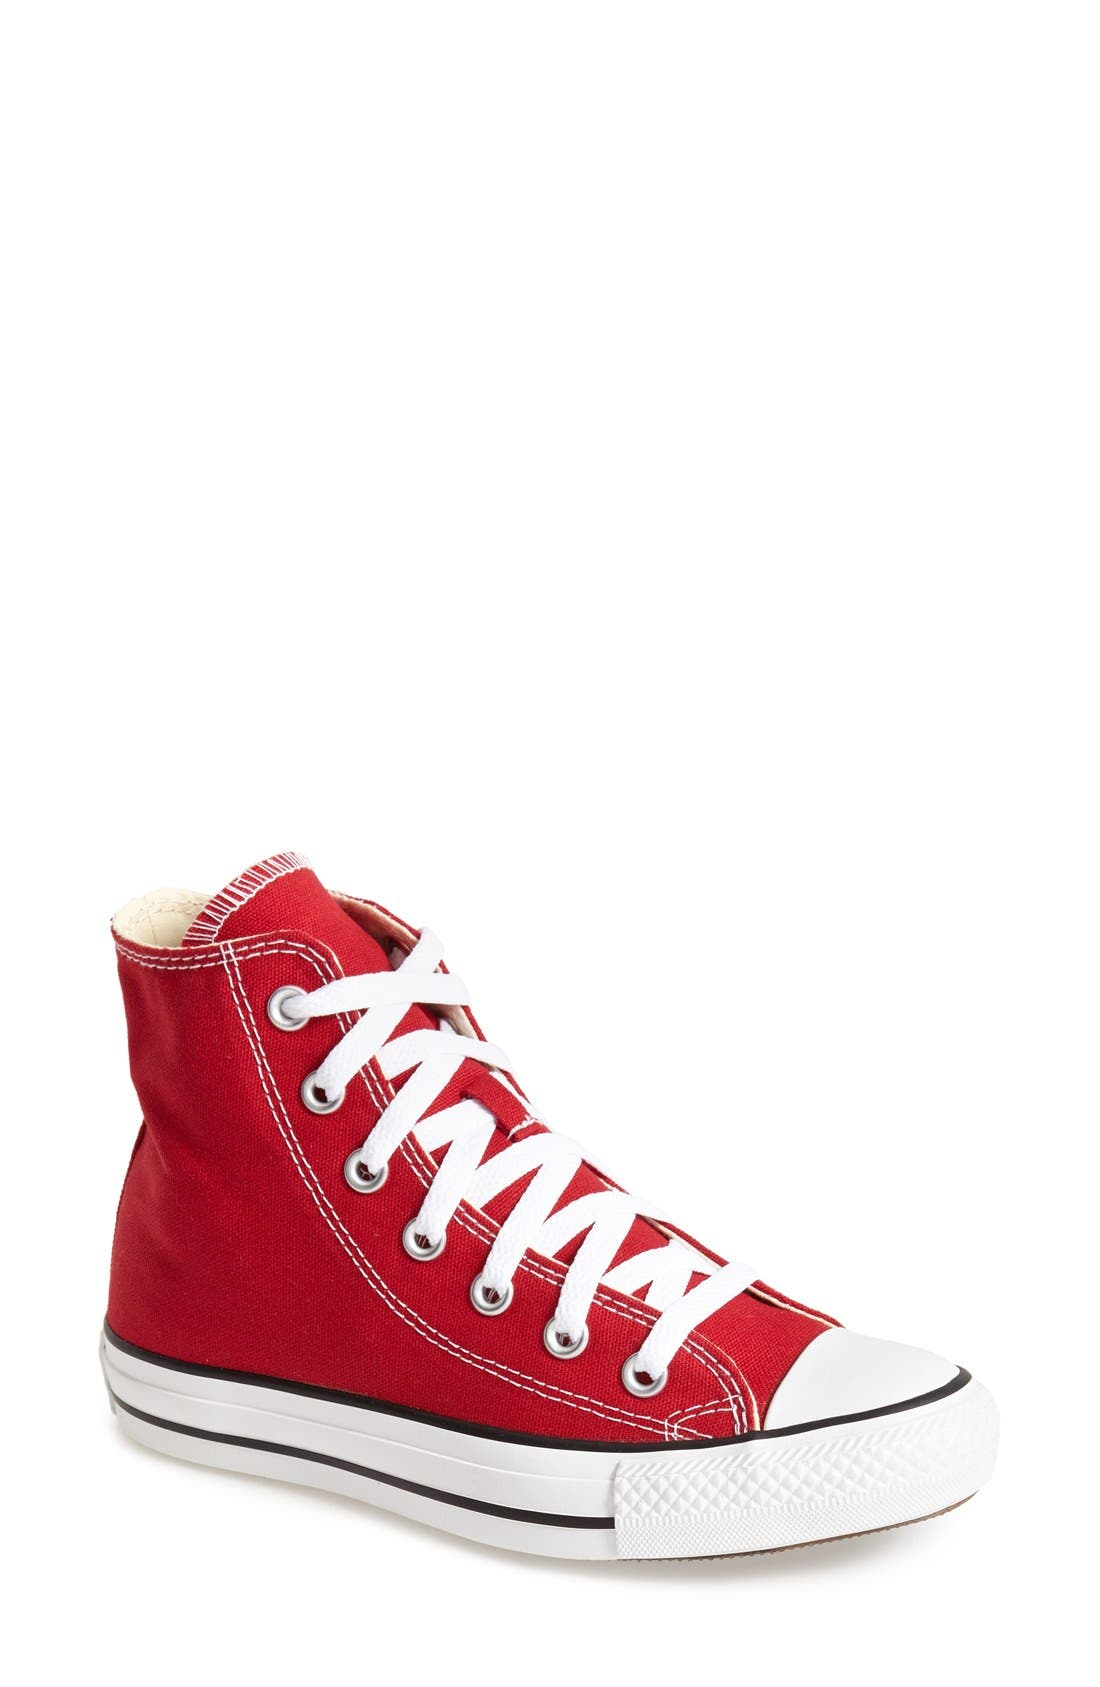 Alternate Image 1 Selected - Converse Chuck Taylor® All Star® 'Seasonal' High Top Sneaker (Women)